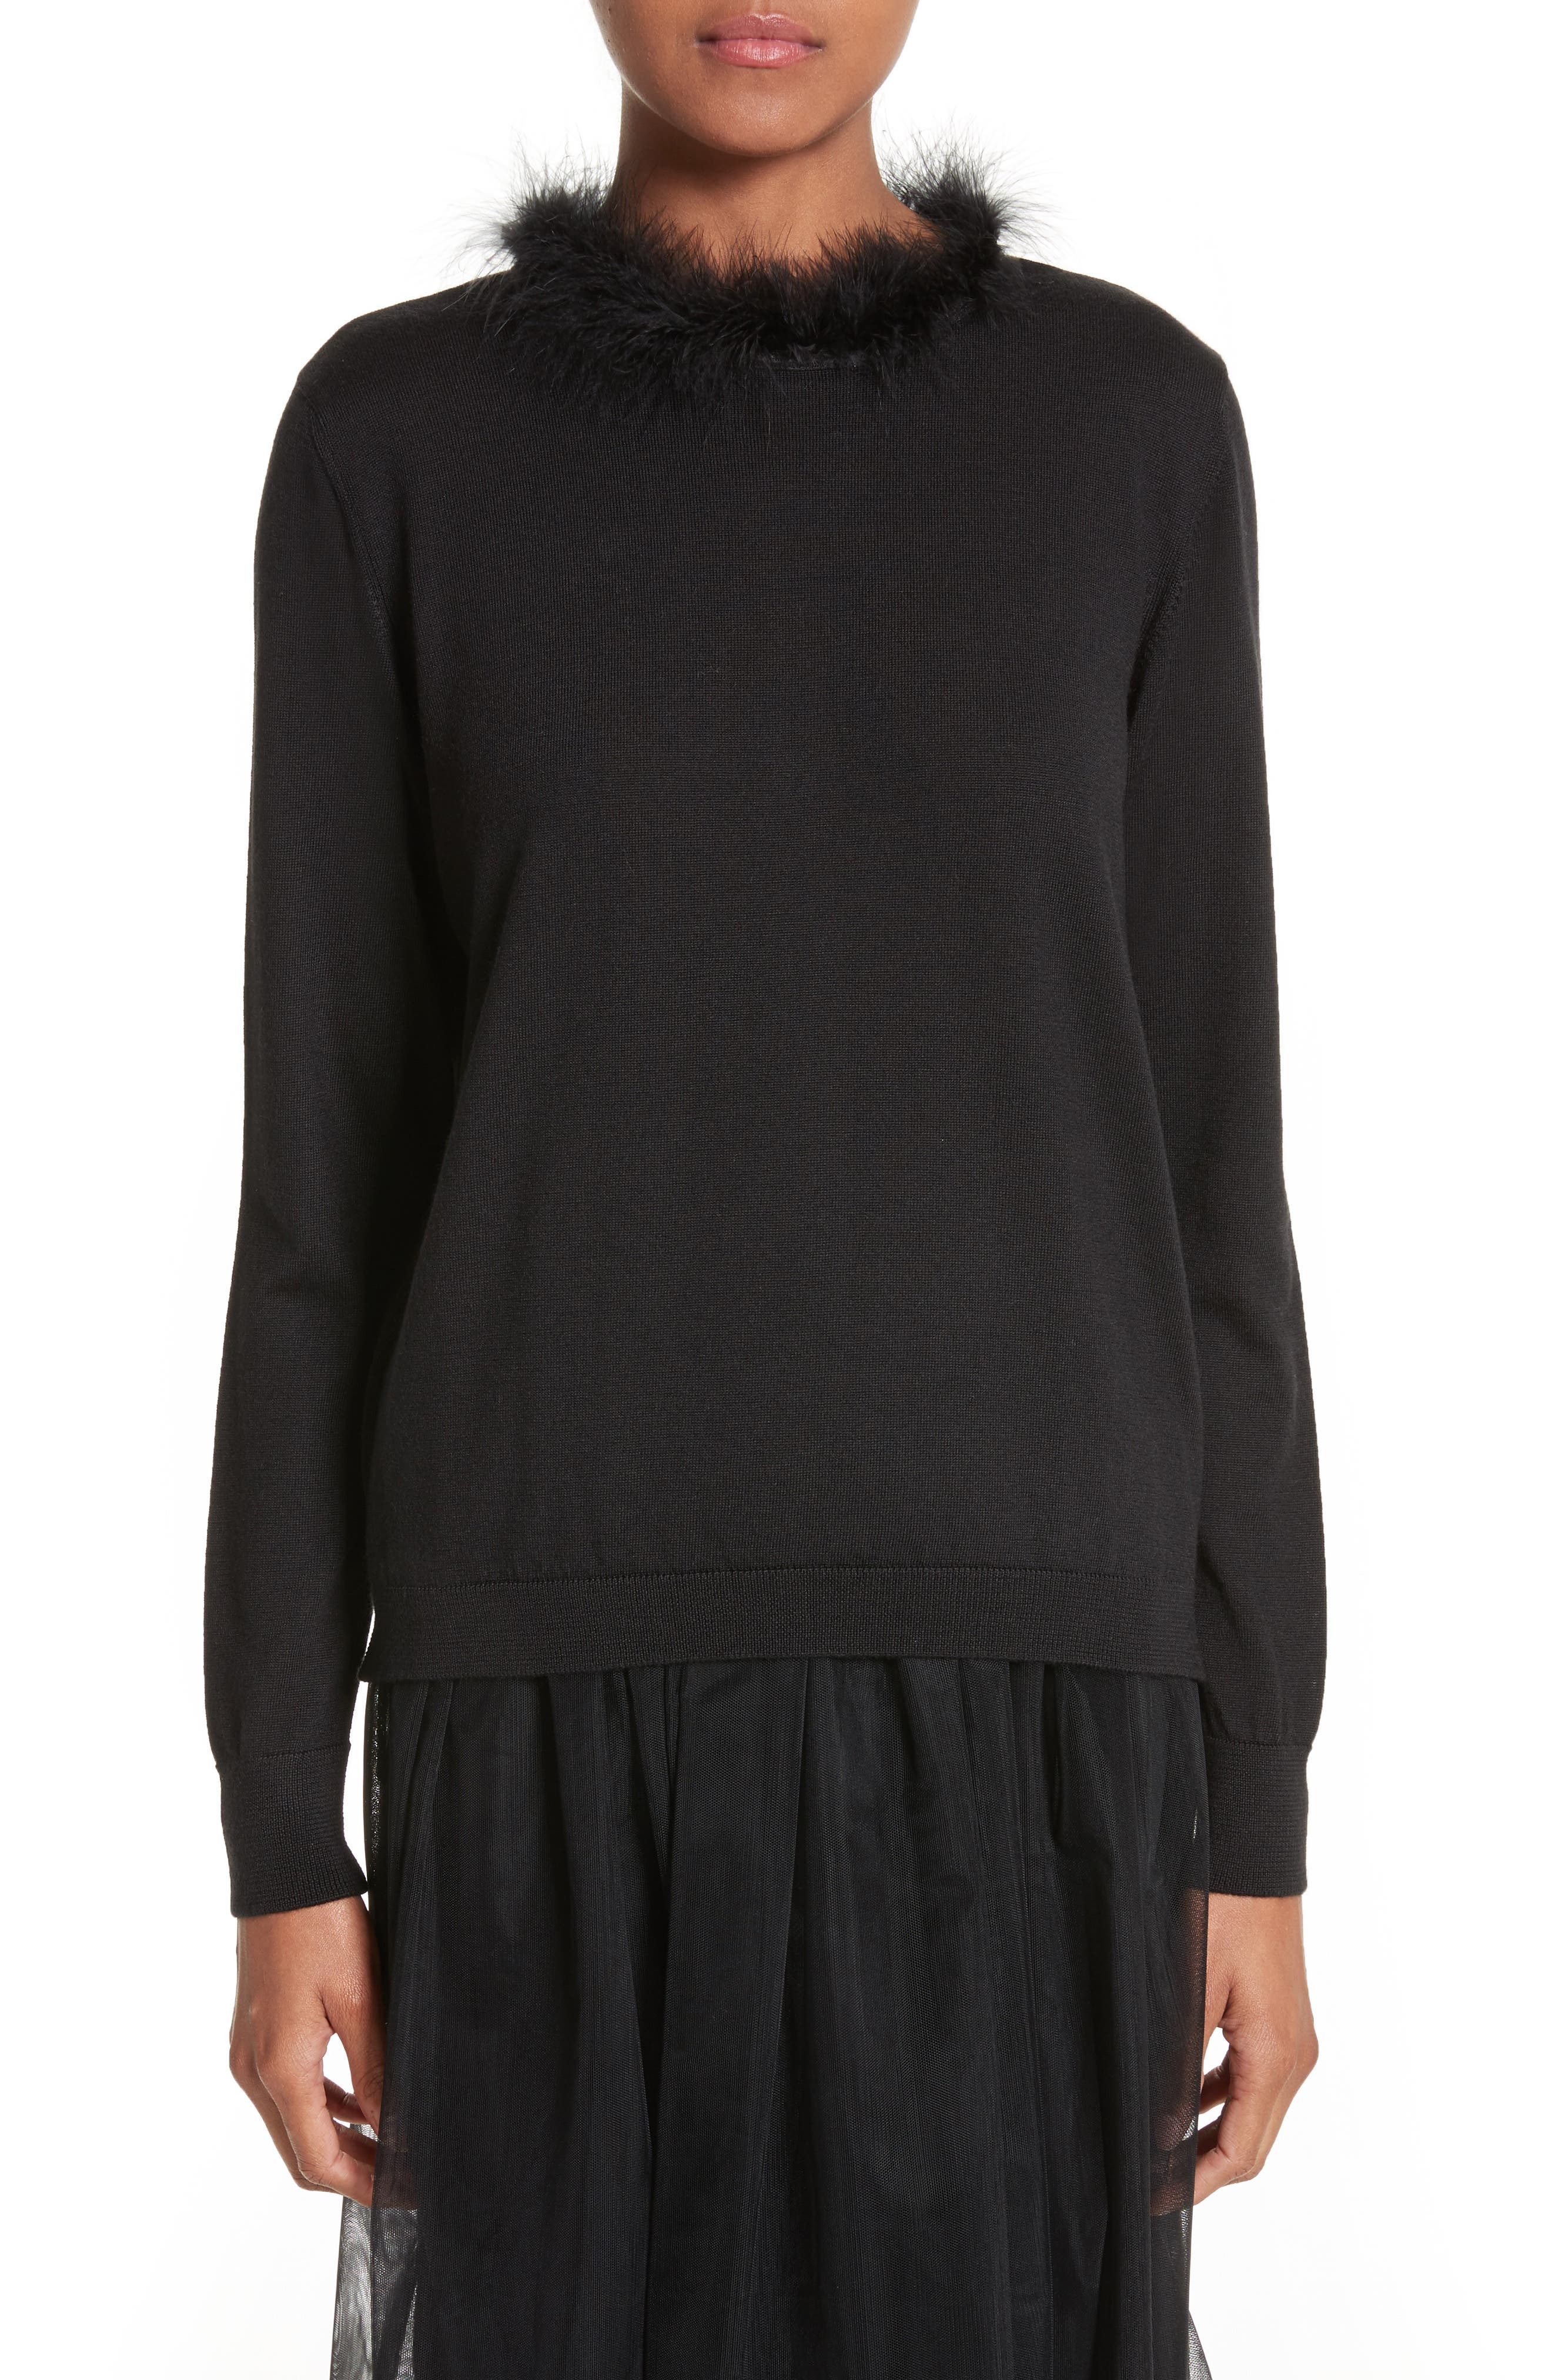 Simone Rocha Teddy Open Back Sweater with Feather Trim